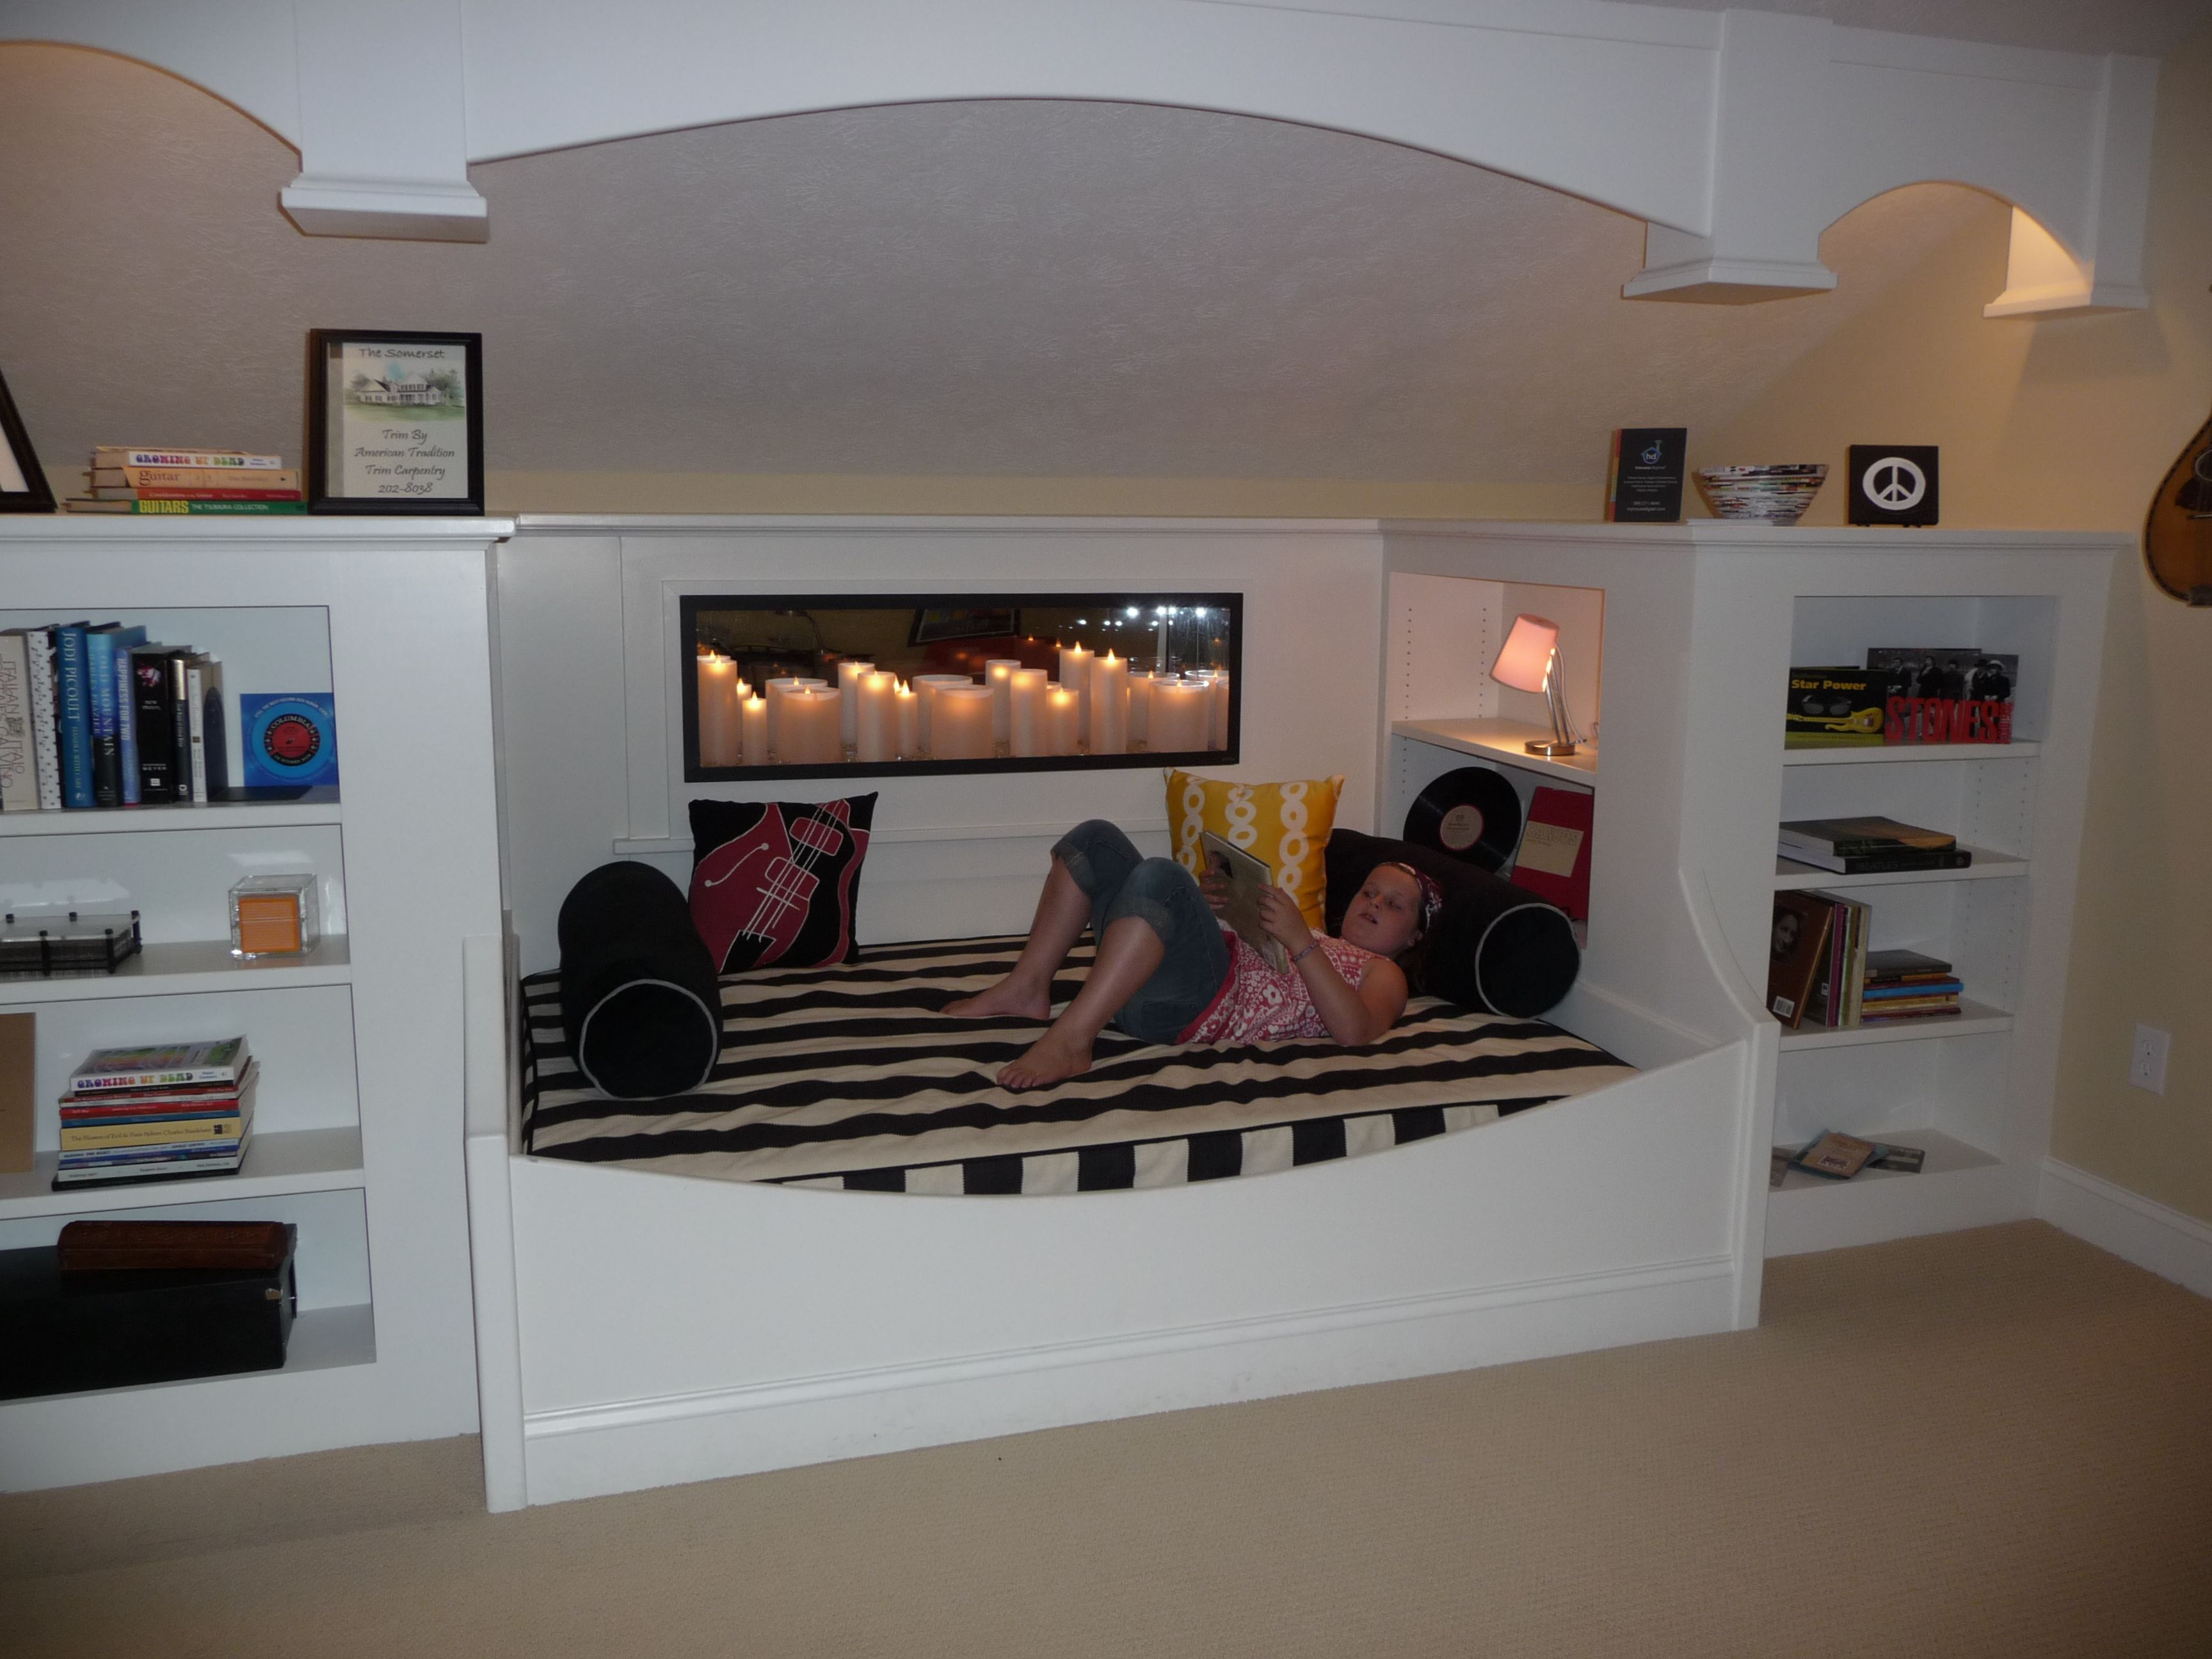 Day beds for teenagers - Teen Suite Equipped With Built In Daybed And Wall Candle Fireplace Feature